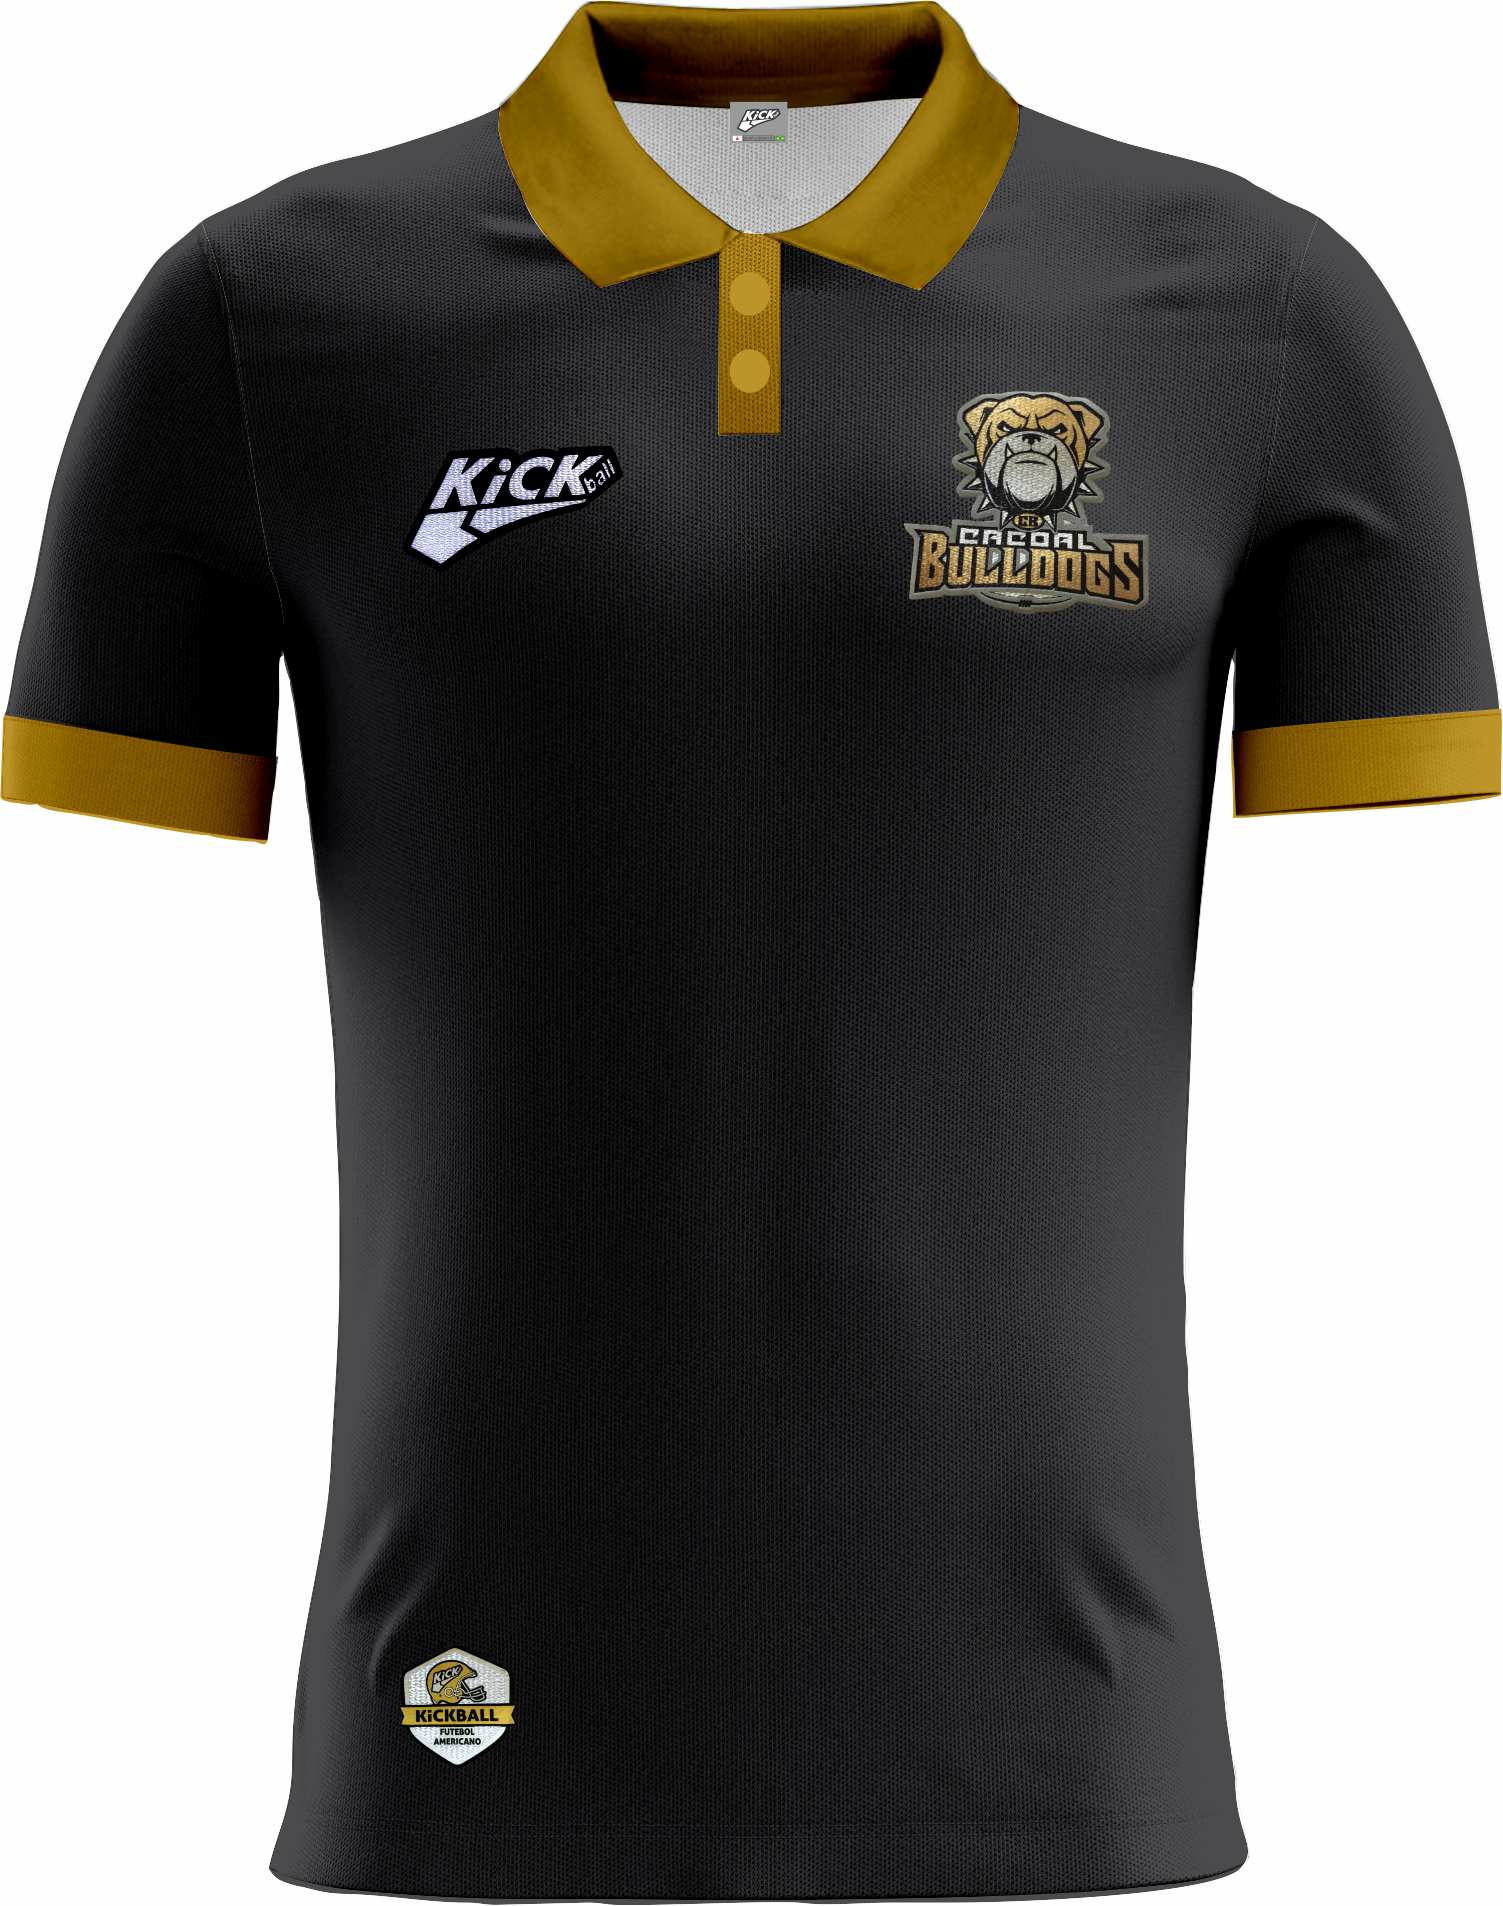 Camisa Of. Cacoal Bulldogs Tryout Polo Masc. Mod1